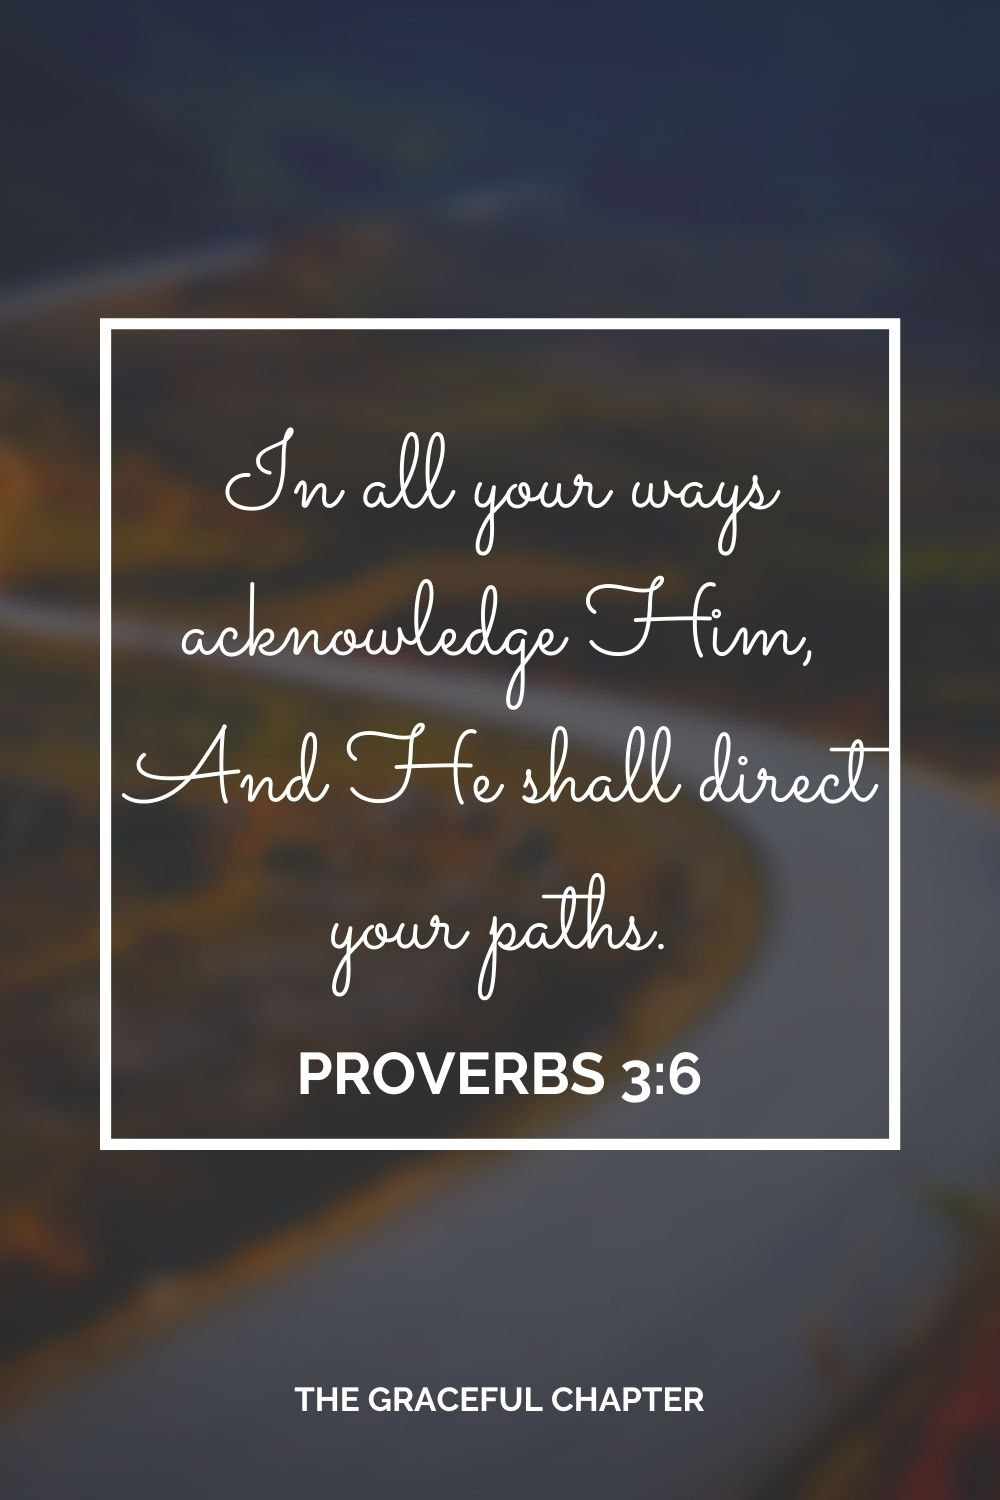 In all your ways acknowledge Him, And He shall direct your paths. Proverbs 3:6